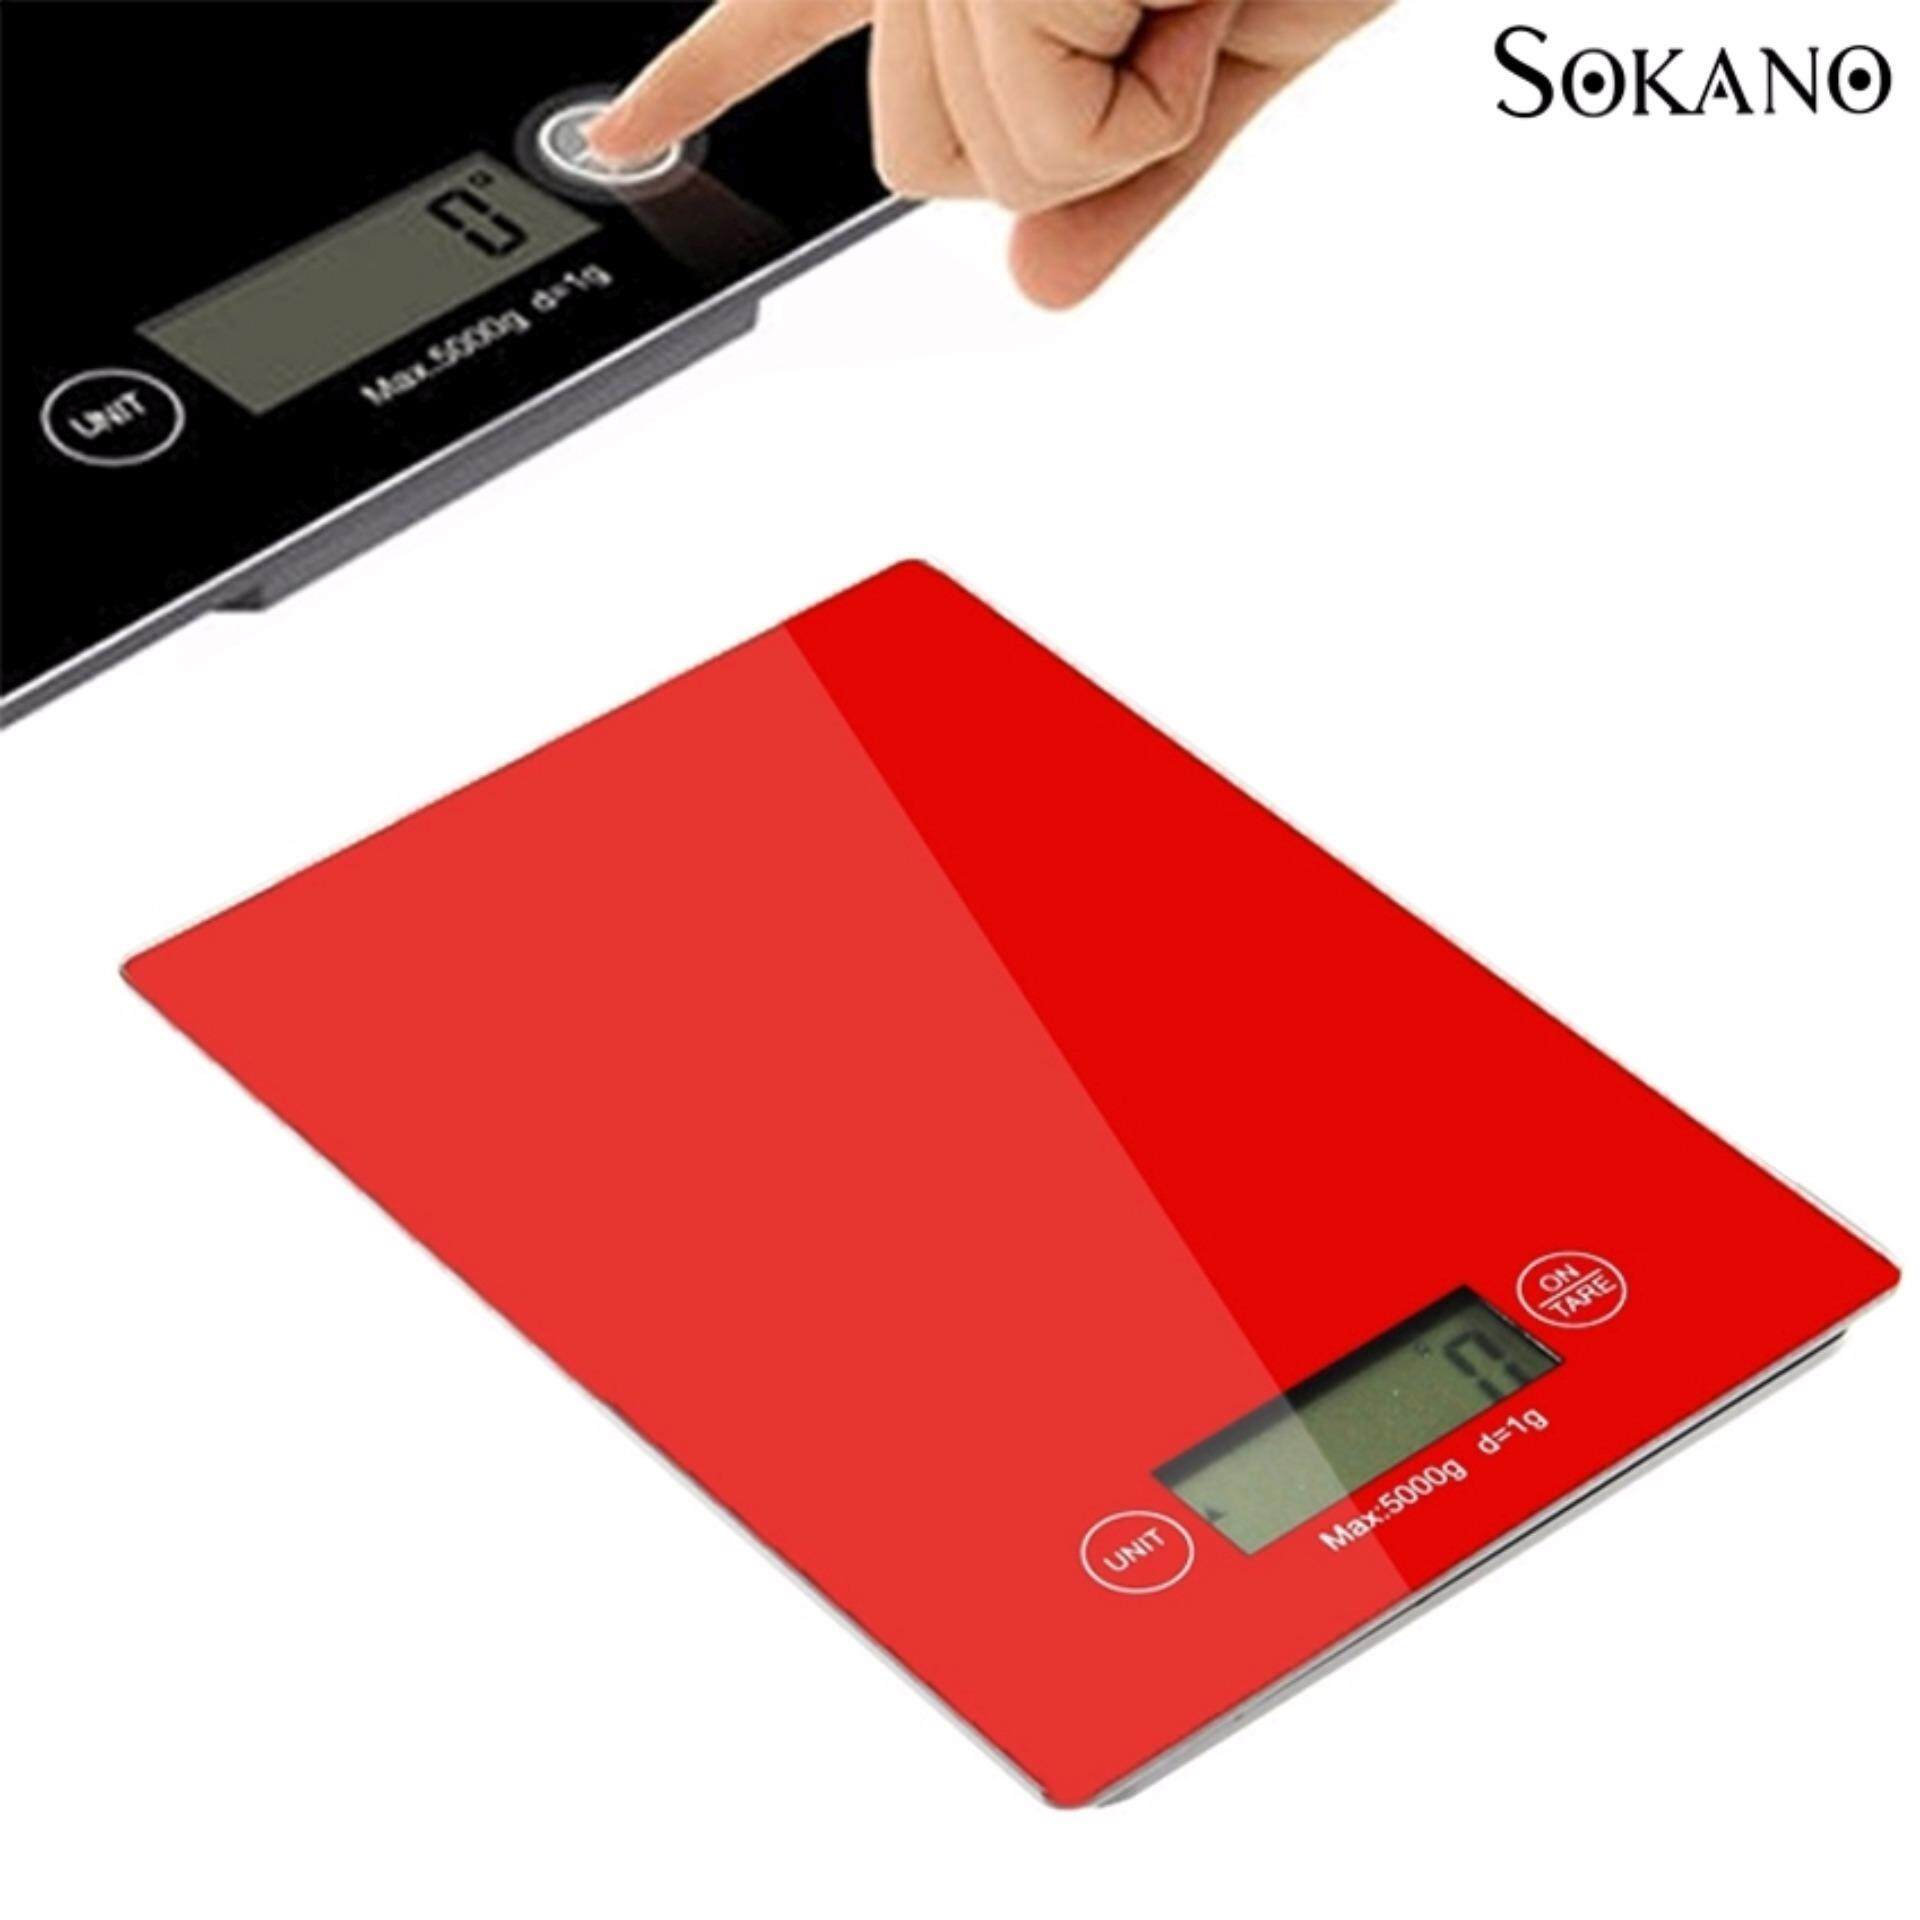 SOKANO Precise Electronic Tempered Glass Kitchen Dapur Scale with Touch Button and LCD Display- Red